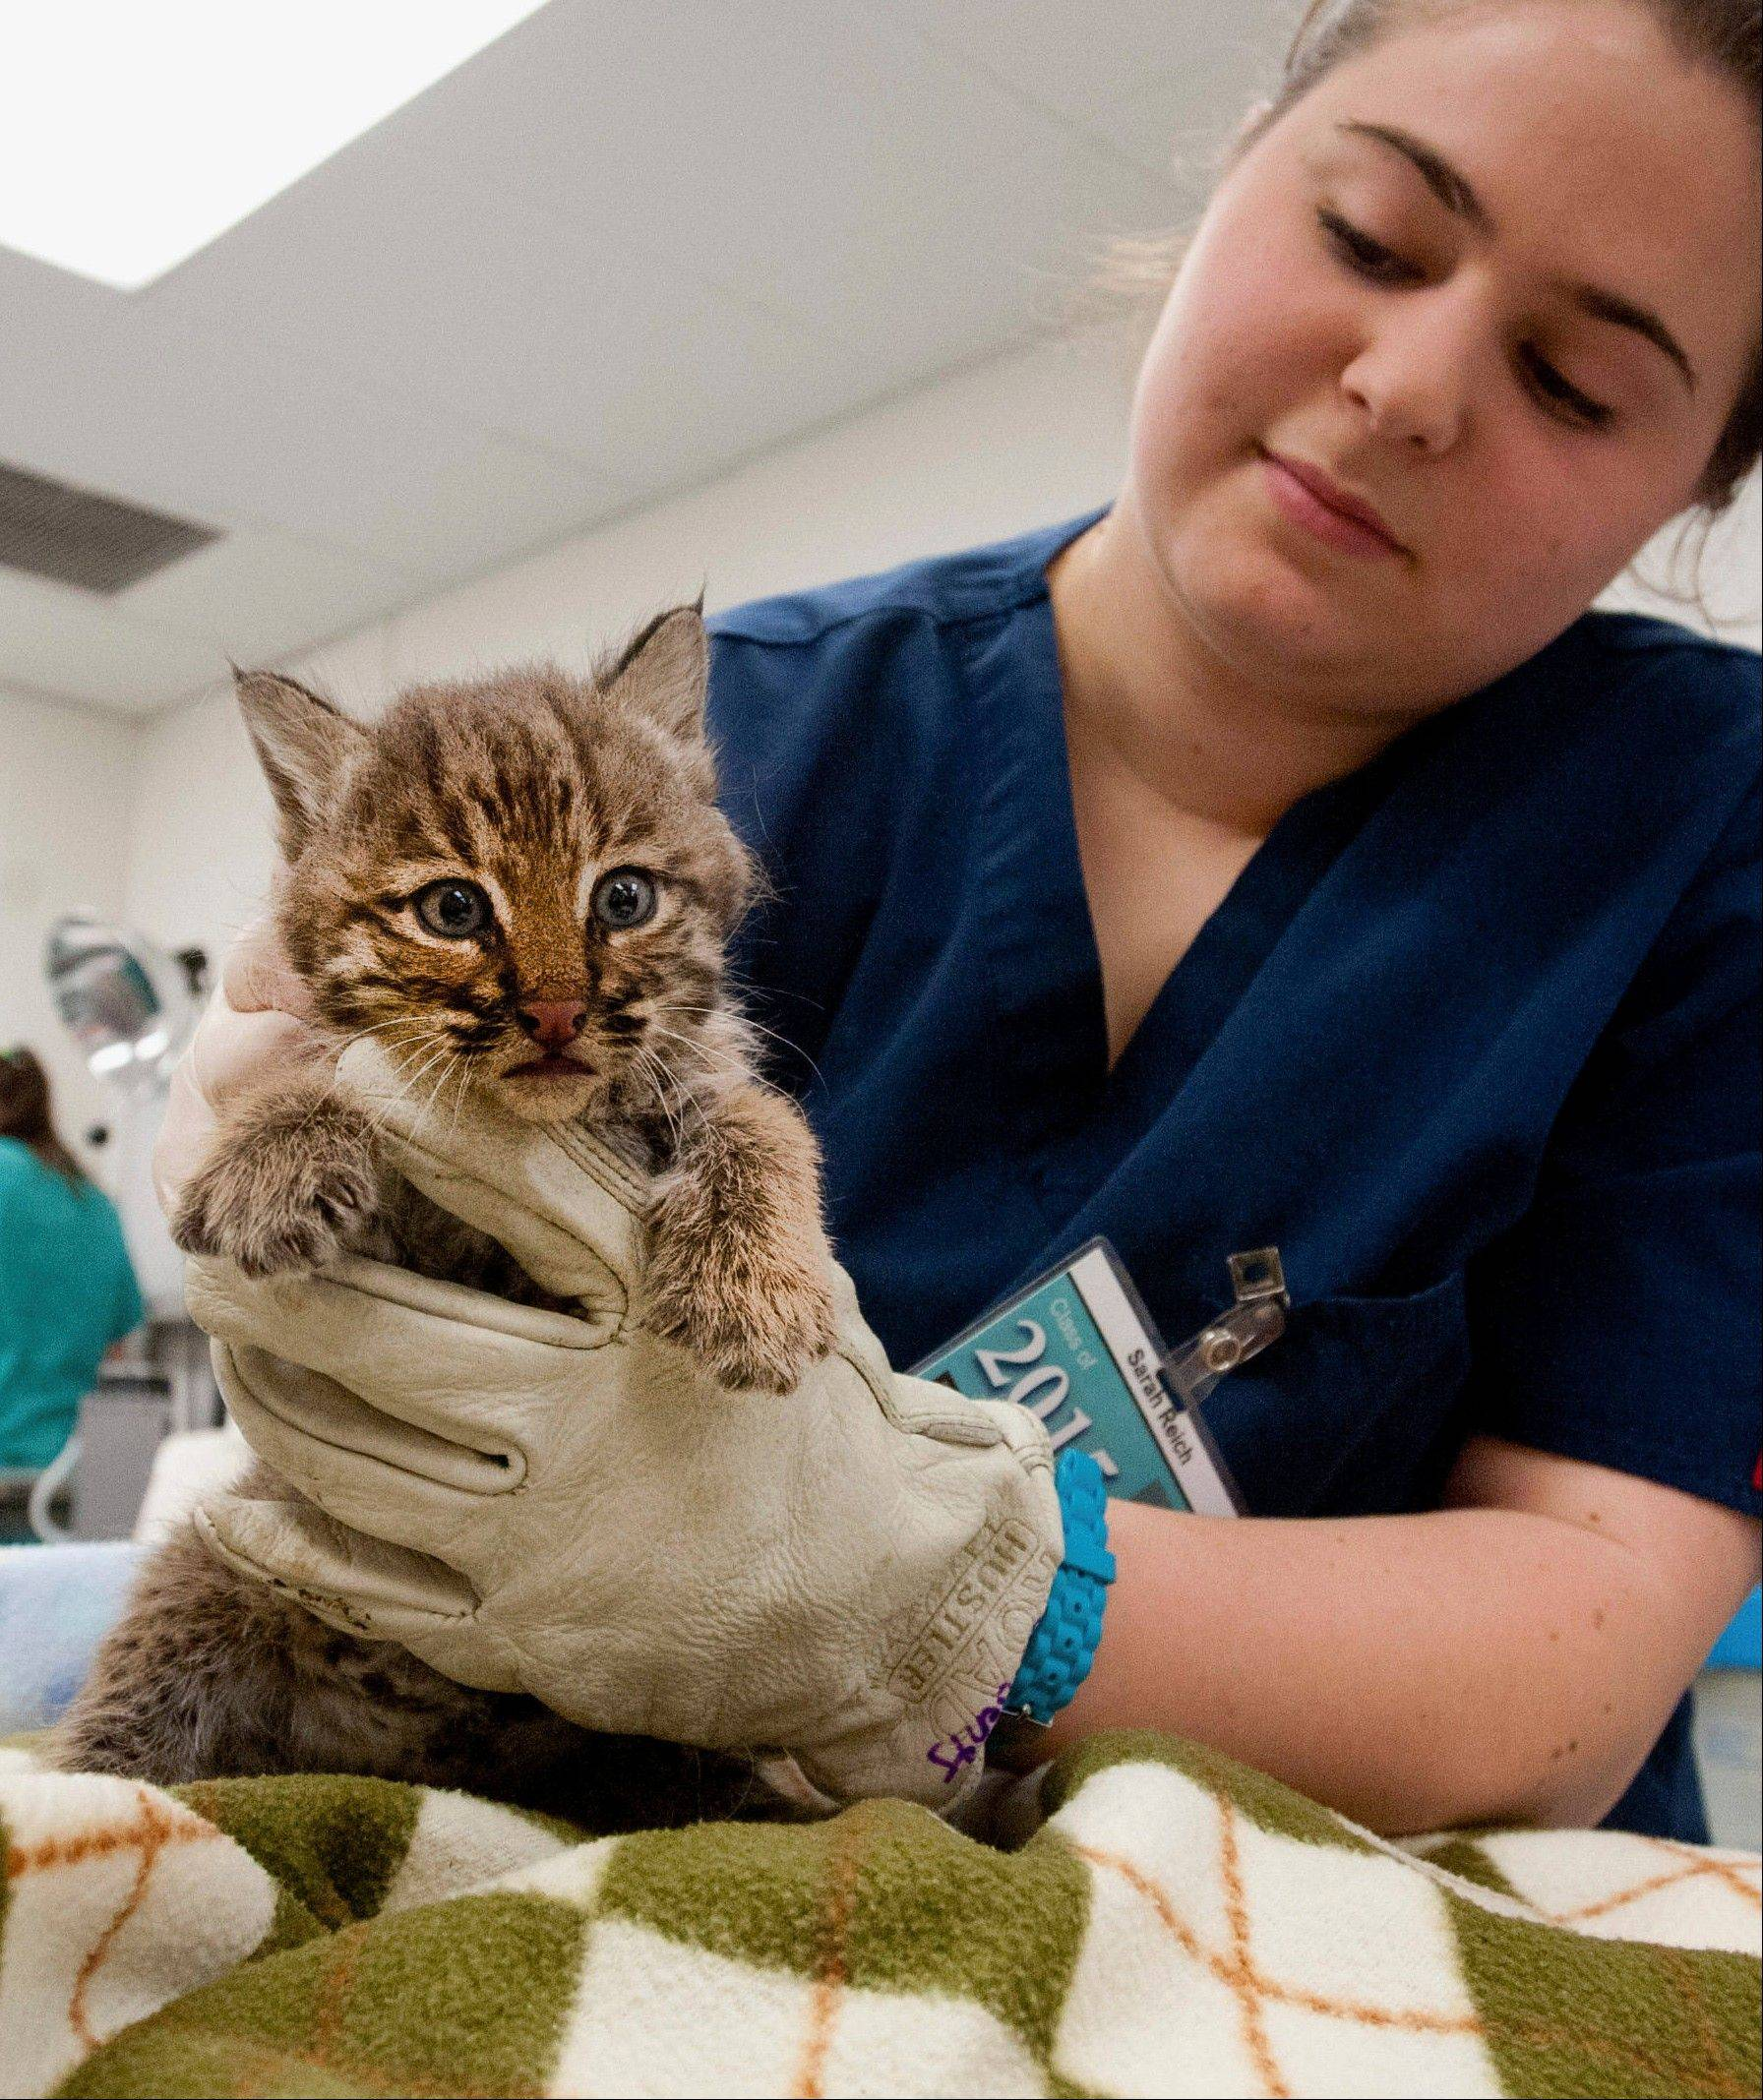 University of Illinois veterinary medicine student manager Sarah Reich holds a bobcat kitten at the University of Illinois Wildlife Medical Center in Urbana. The orphaned kitten is one of two being cared for after they were found on a train car near Tuscola